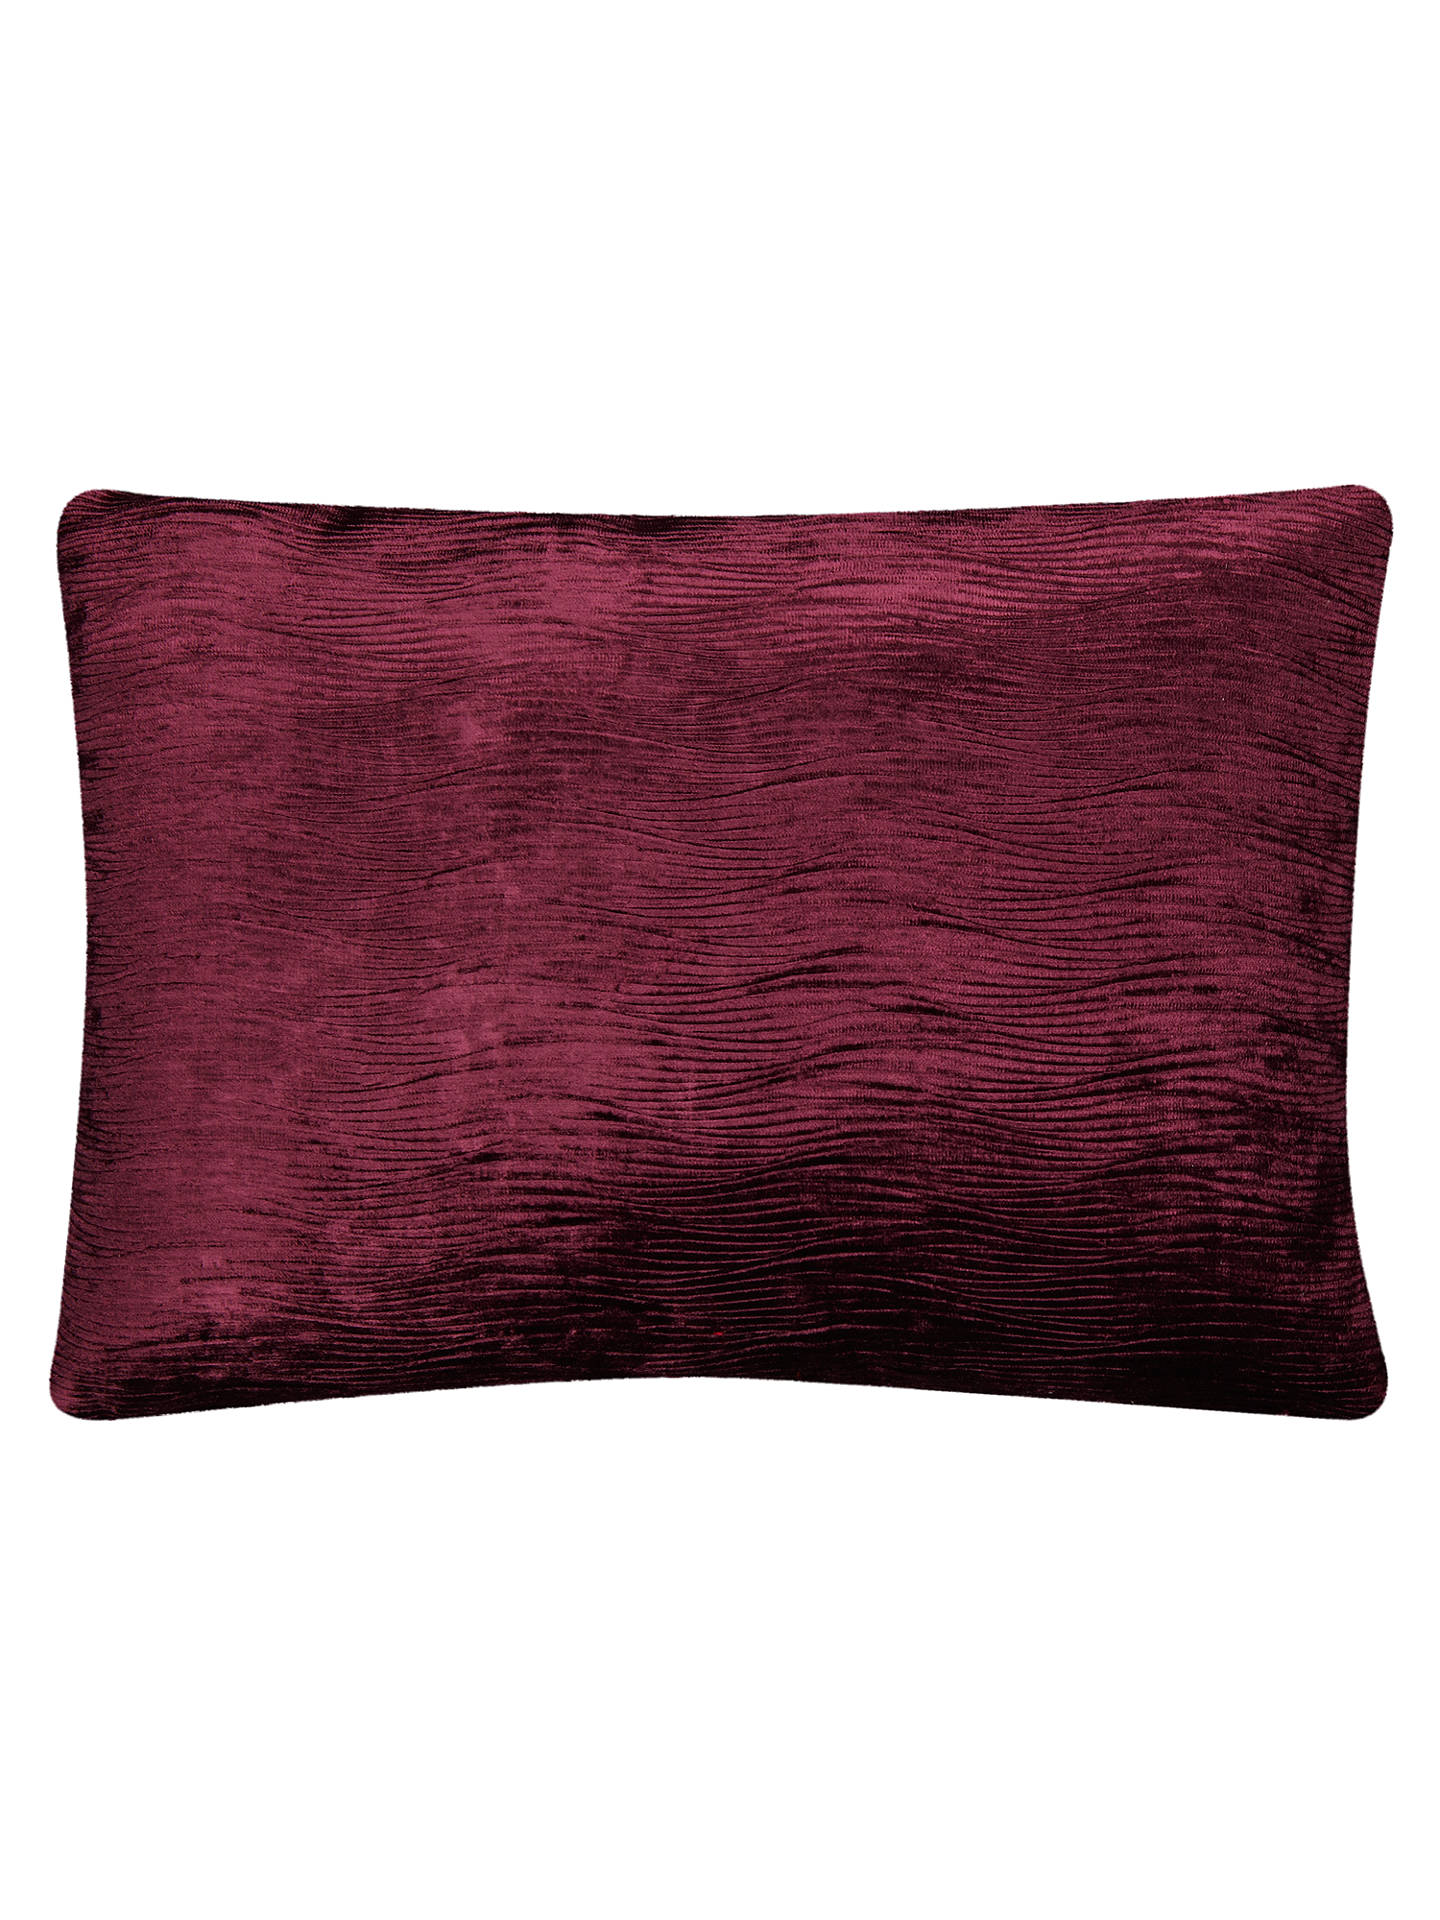 Buy Harlequin Arkona Velvet Cushion, Damson Online at johnlewis.com